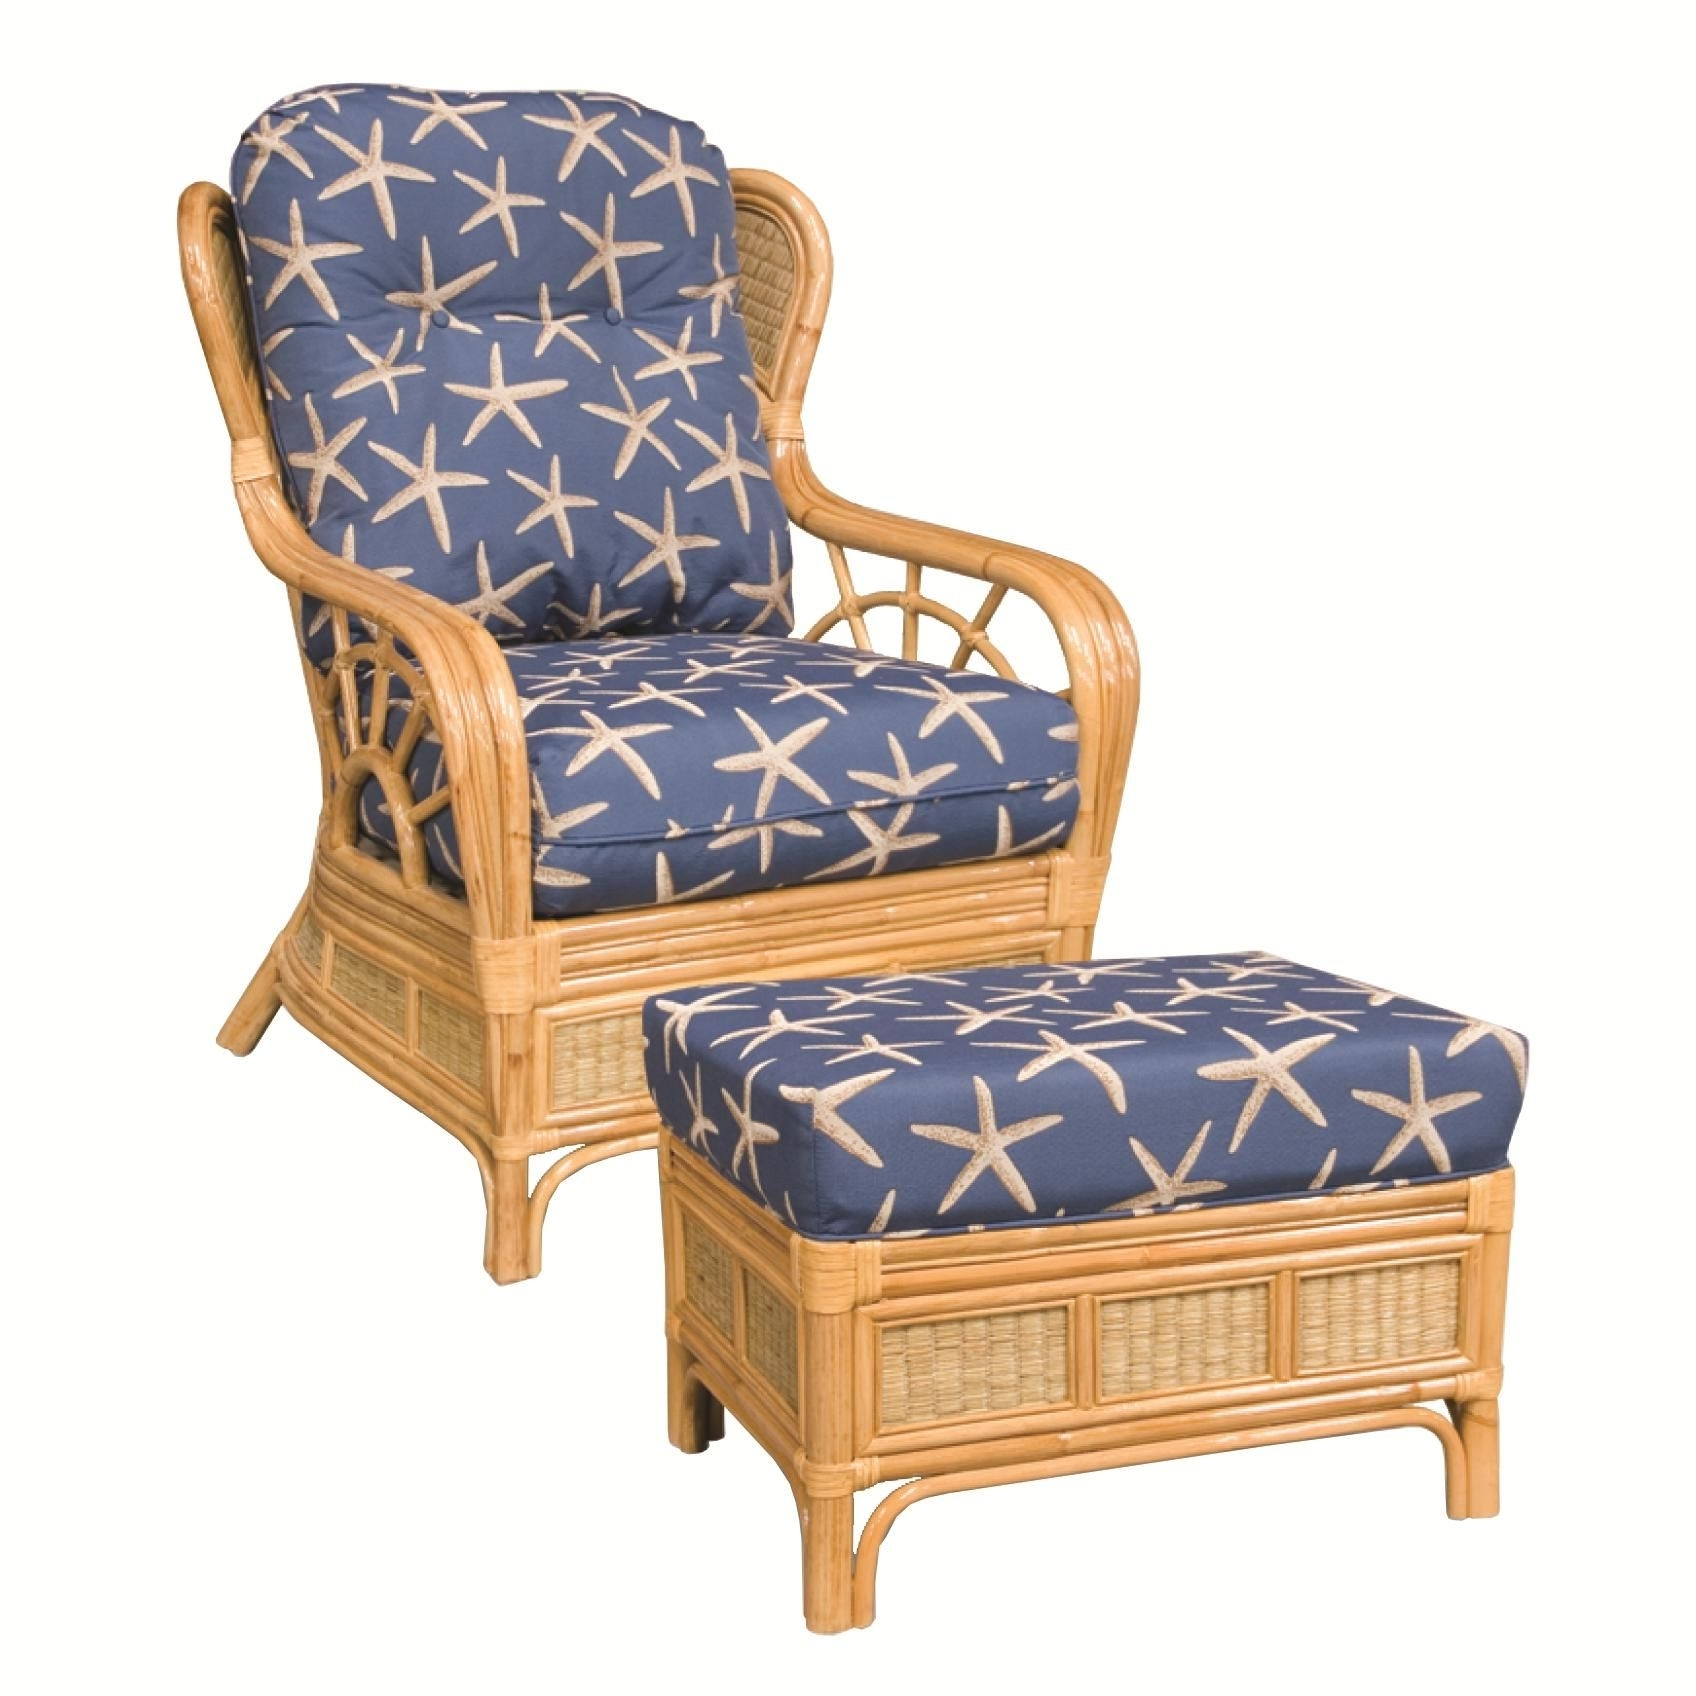 Fashionable Wicker Rocking Chairs And Ottoman With 381 Collection Wicker Rattan Chair And Ottomancapris Furniture (View 6 of 15)